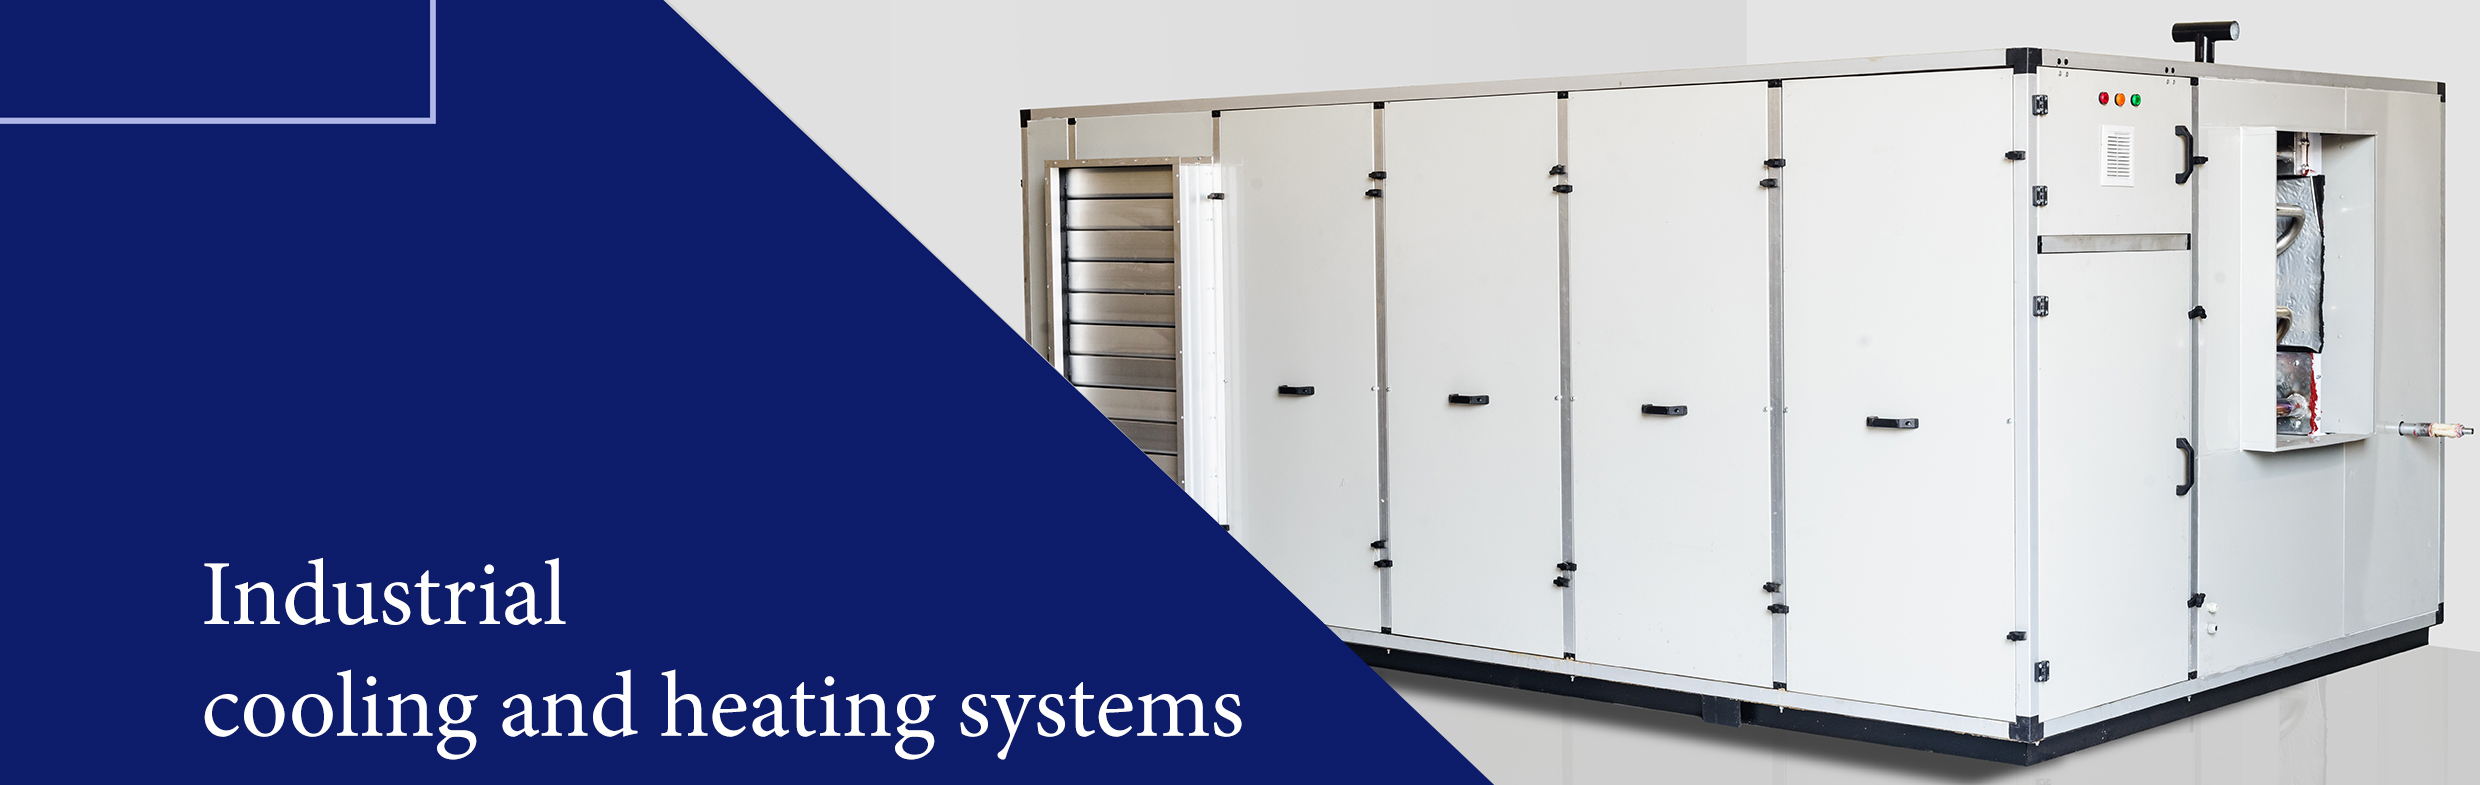 Industrial cooling and heating systems